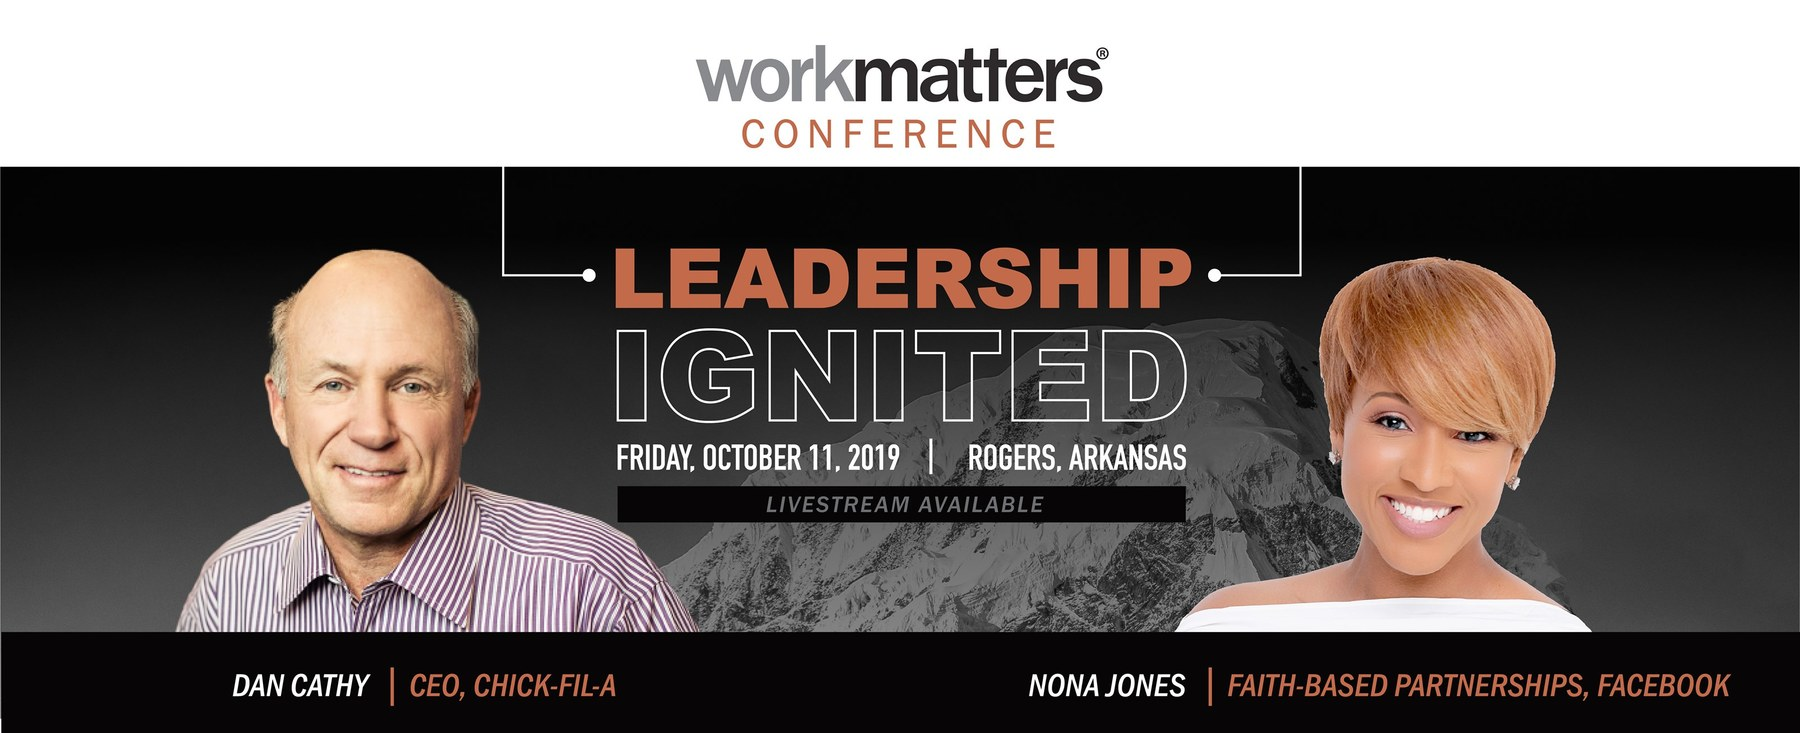 Leadership Ignited | 2019 Workmatters Conference | October 11th, 2019